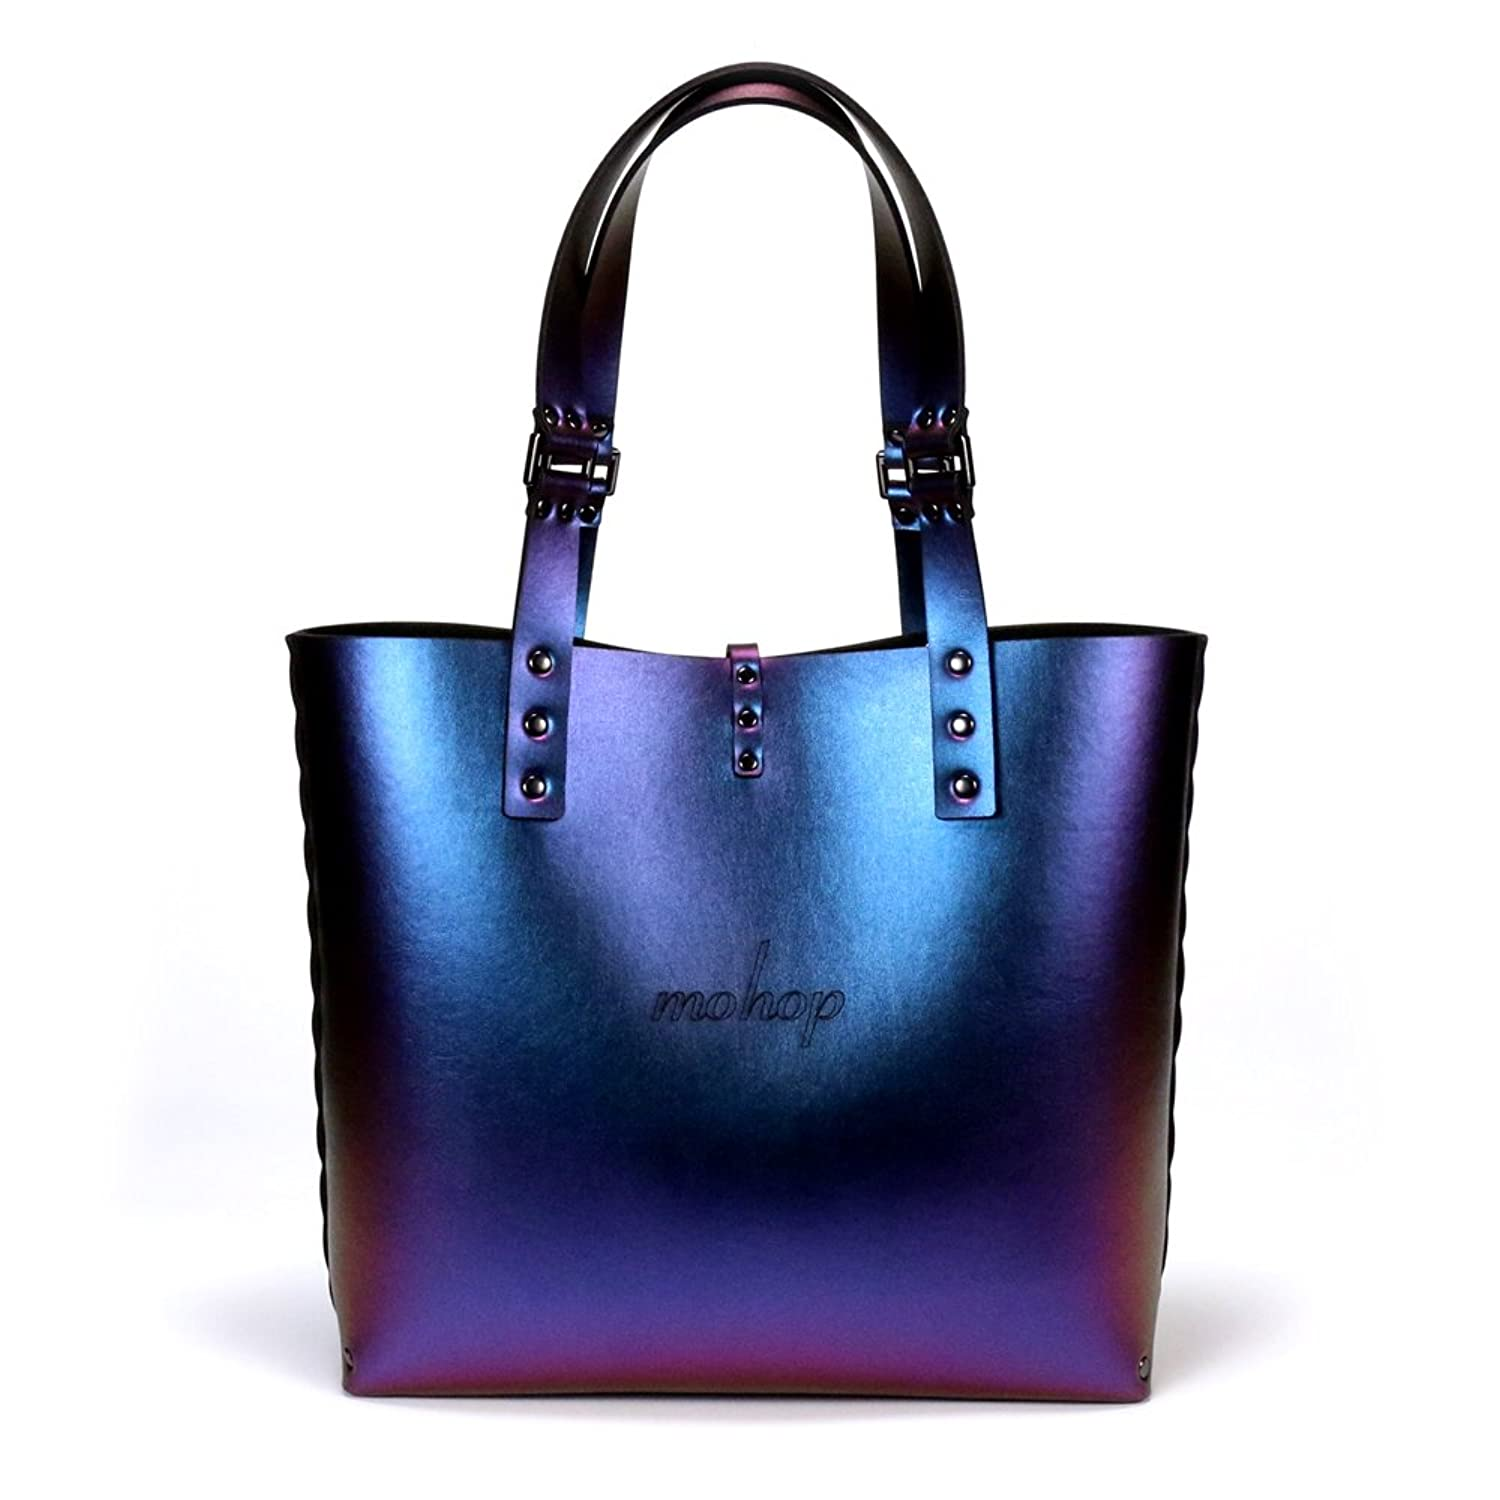 cobalt iridescent tote bag blue to purple tote vegan made in cobalt iridescent tote bag blue to purple tote vegan made in usa handbags amazon com